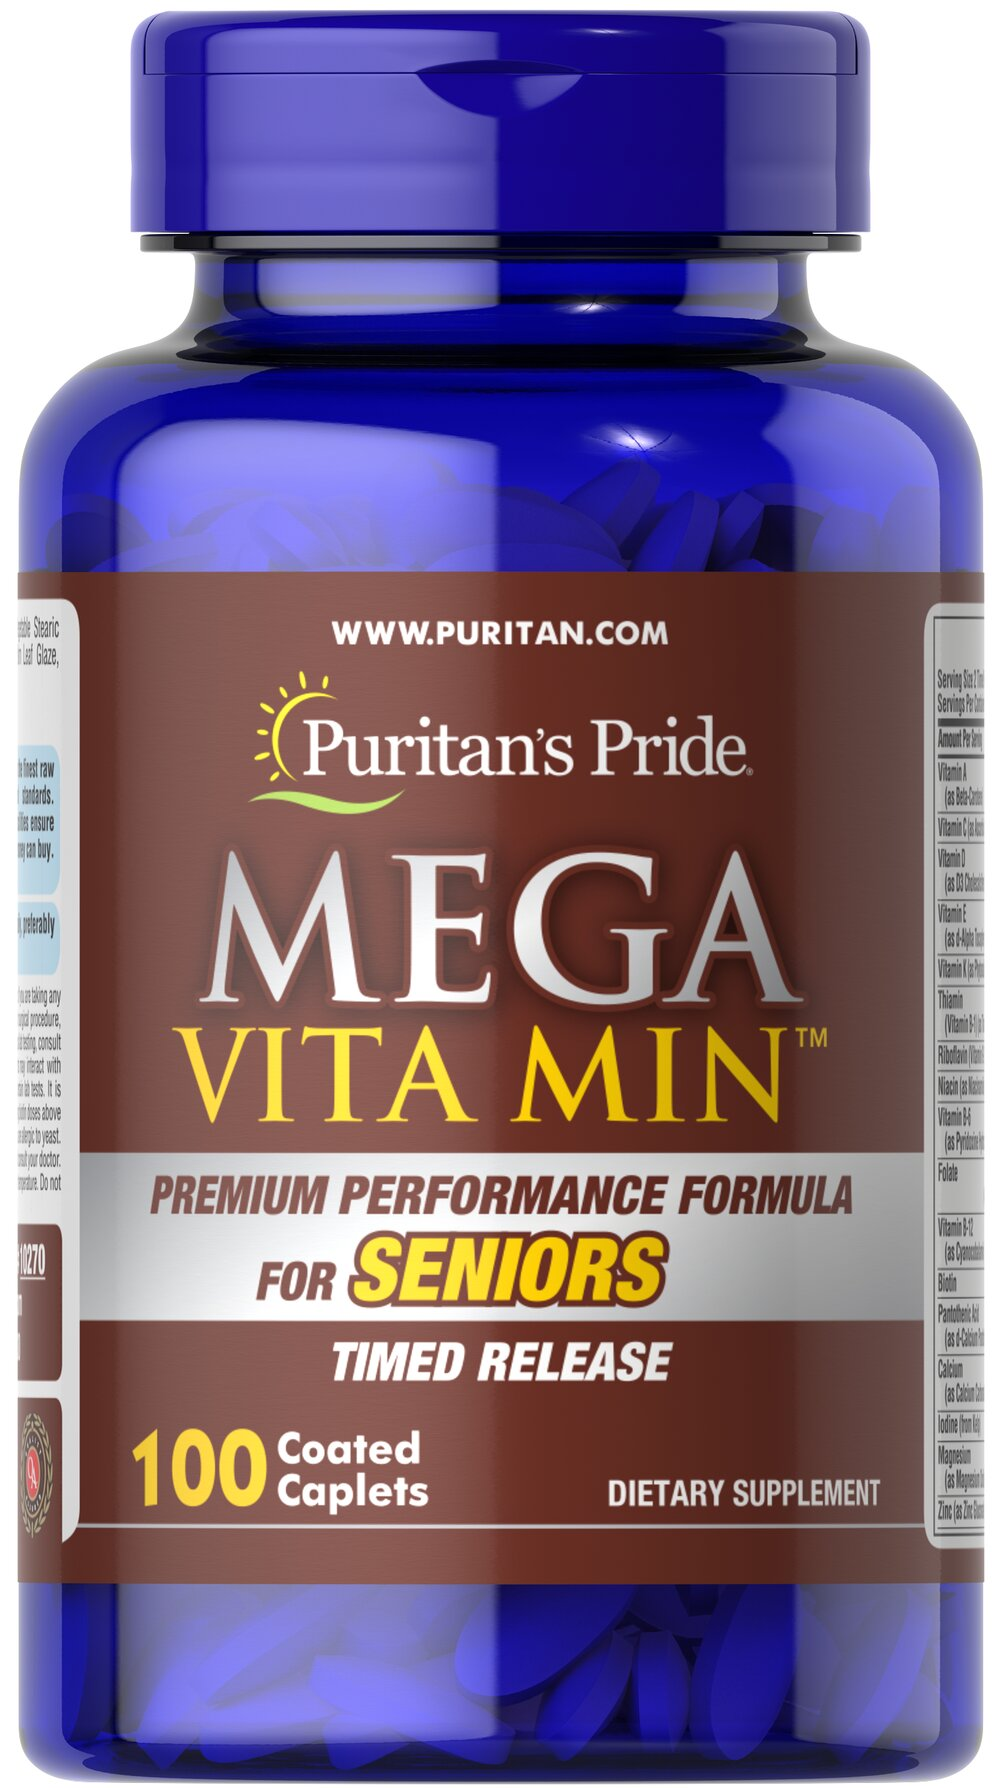 Mega Vita Min™ Multivitamin for Seniors Timed Release <p>Mega Vita Min™ for Seniors combines a bounty of vitamins and minerals, with a cornucopia of herbs to create a specialized formula specifically designed for maturing adults.  Start reaping the benefits of a timed-release vitamin geared for your needs.</p> 100 Coated Caplets  $21.59